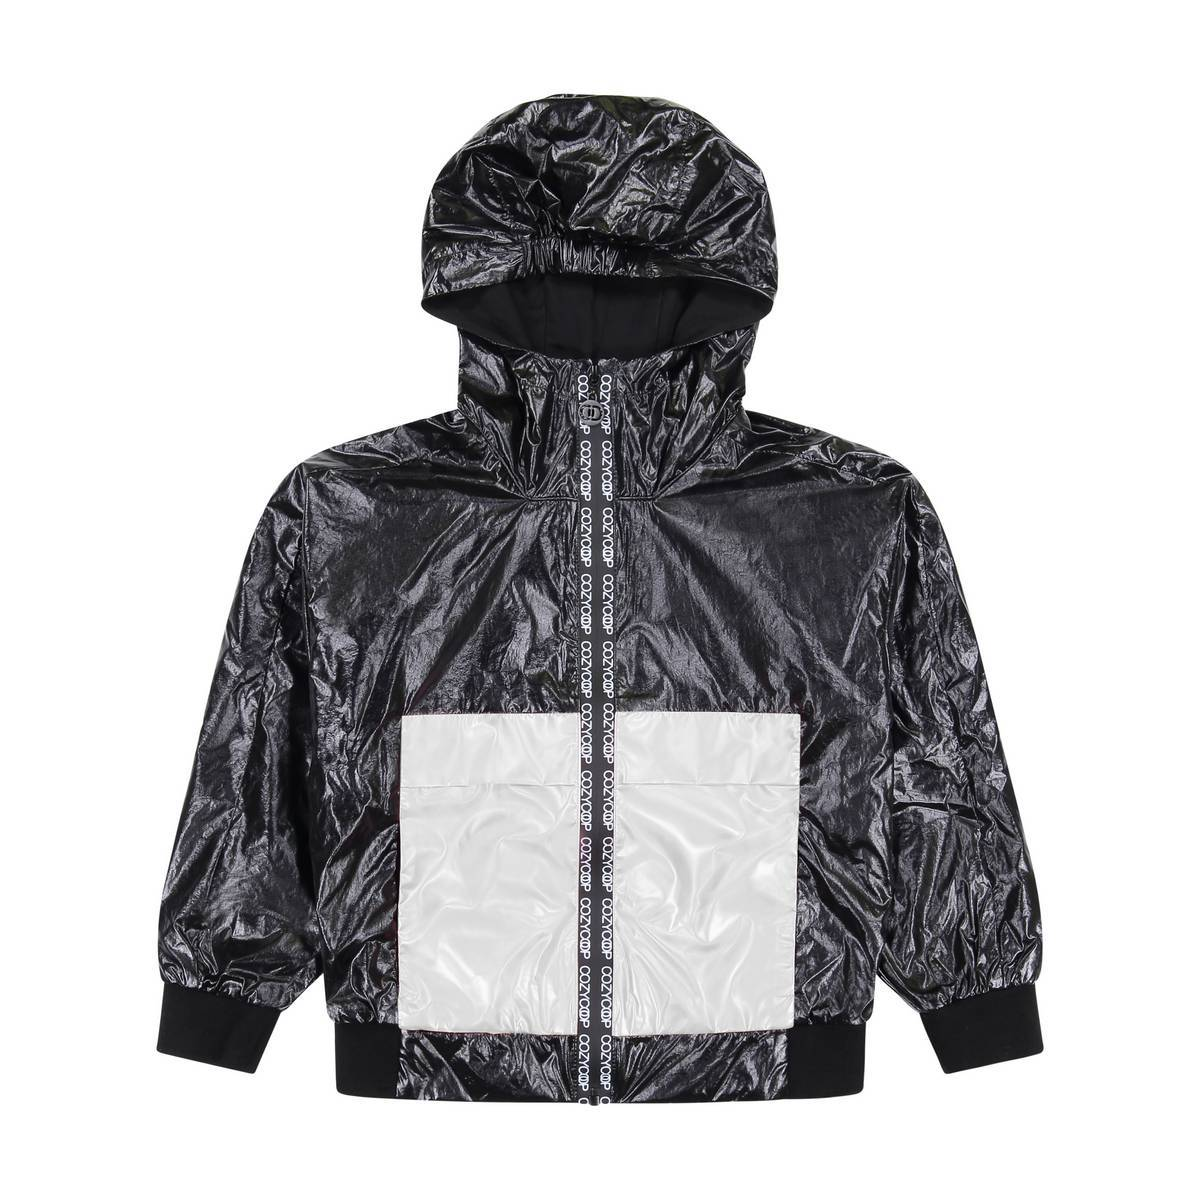 Black/White Spring Jacket